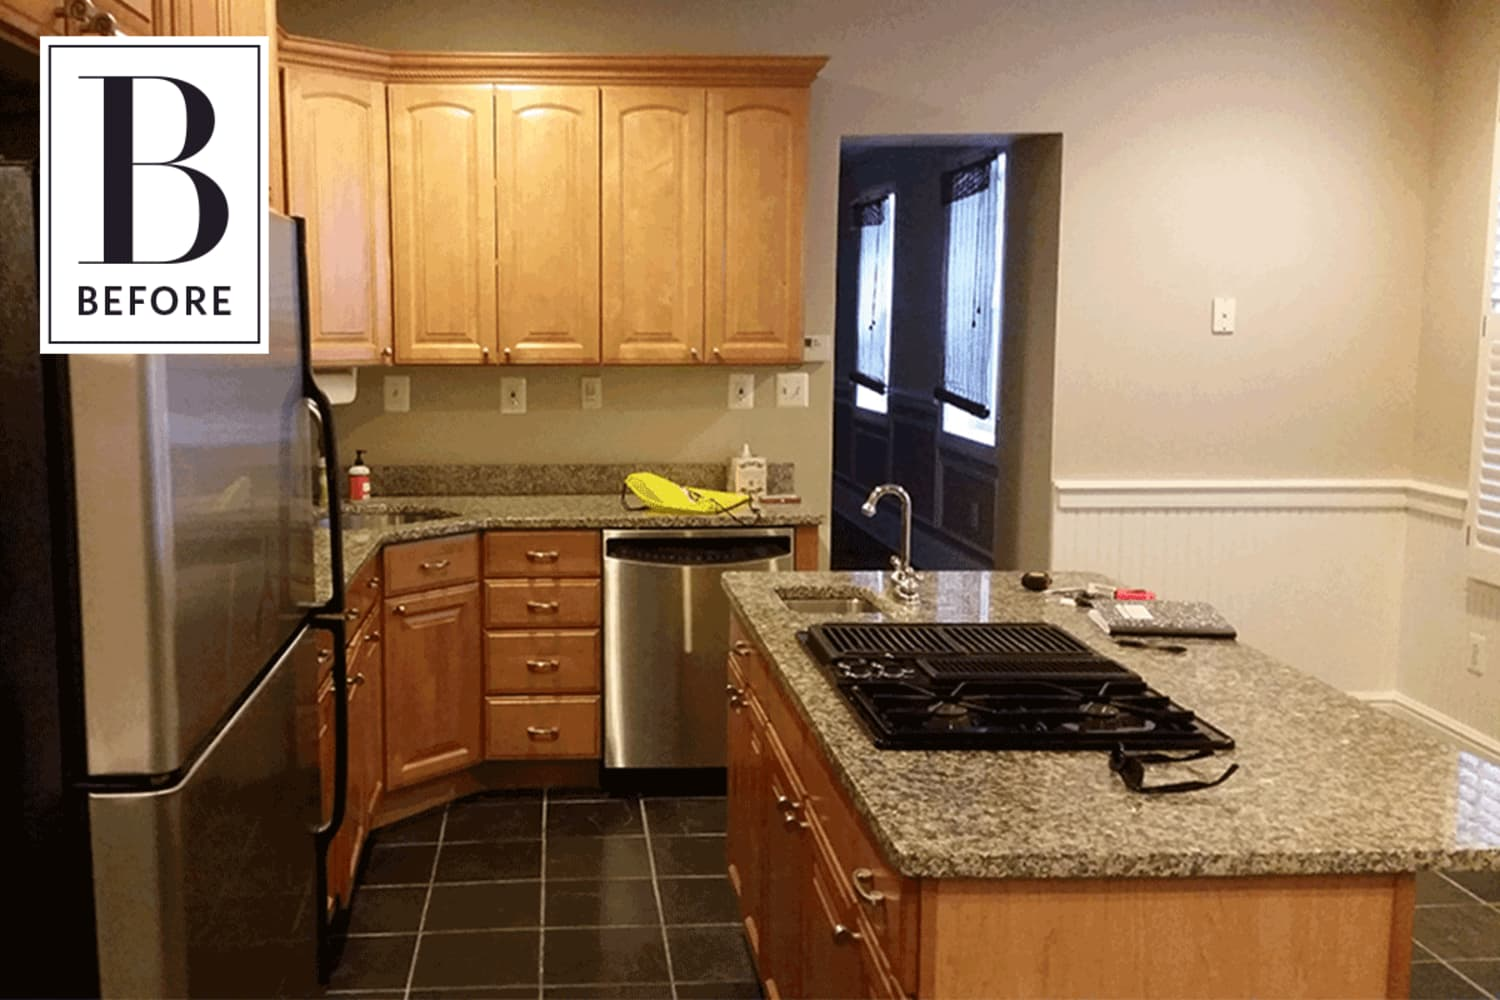 Before & After: A Sister Steps in From Across the Country to Give This Kitchen a New Look